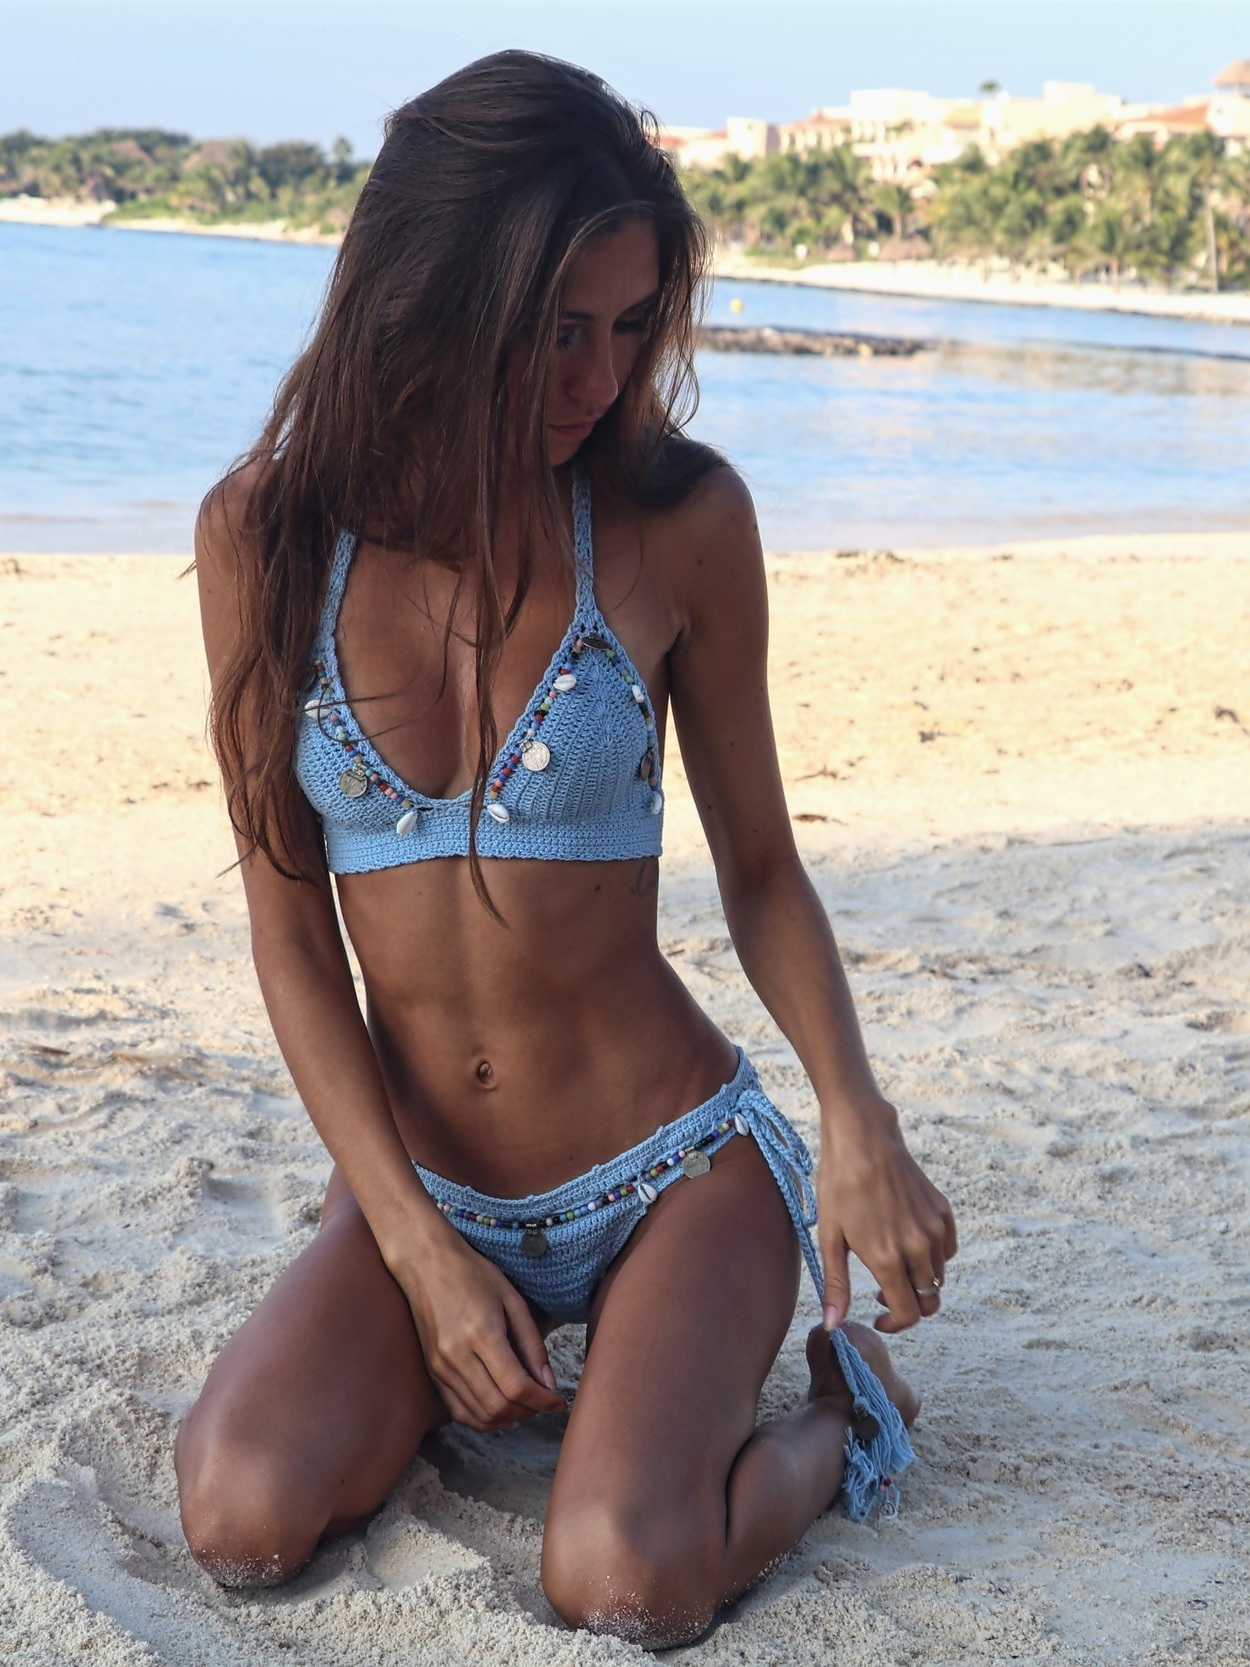 The Hungarian Brunette My 5 favourite bikinis flattering for skinny girls with small boobs - Andi Bagus blue seashells crochet bikini